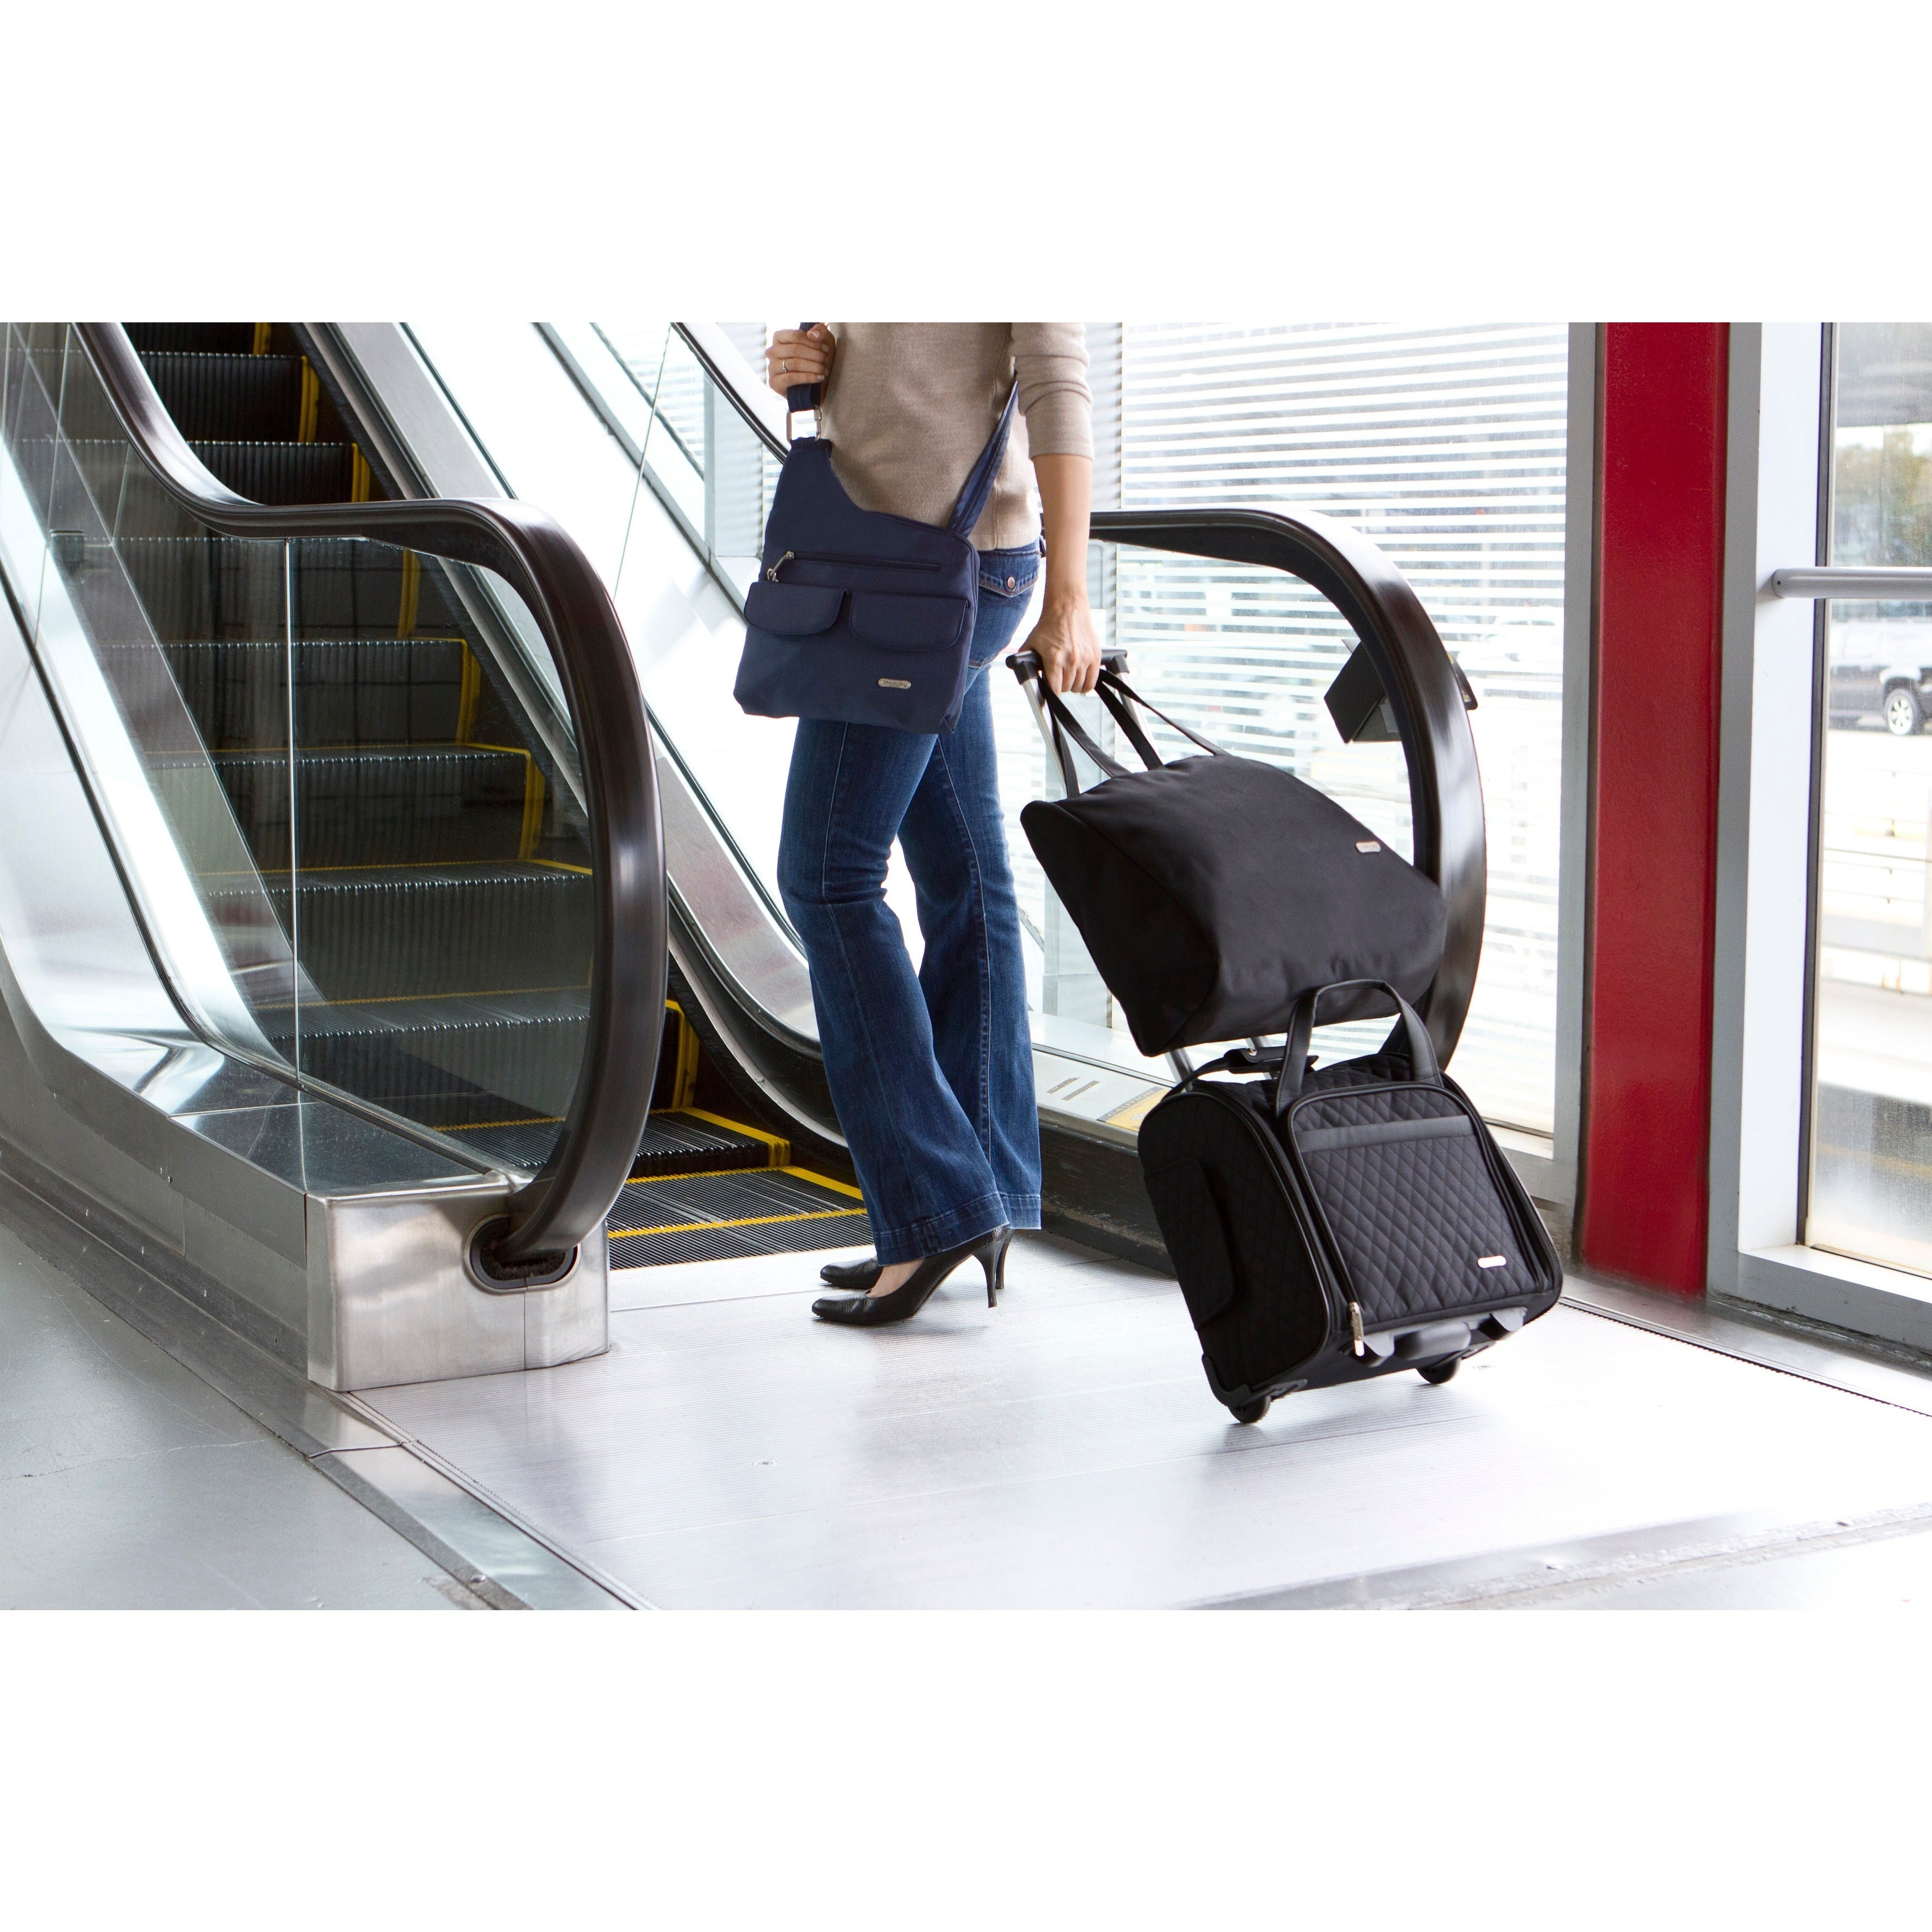 266a5753e Shop Travelon Wheeled Underseat Carry-on with Back-up Bag - Free Shipping  Today - Overstock - 3958054